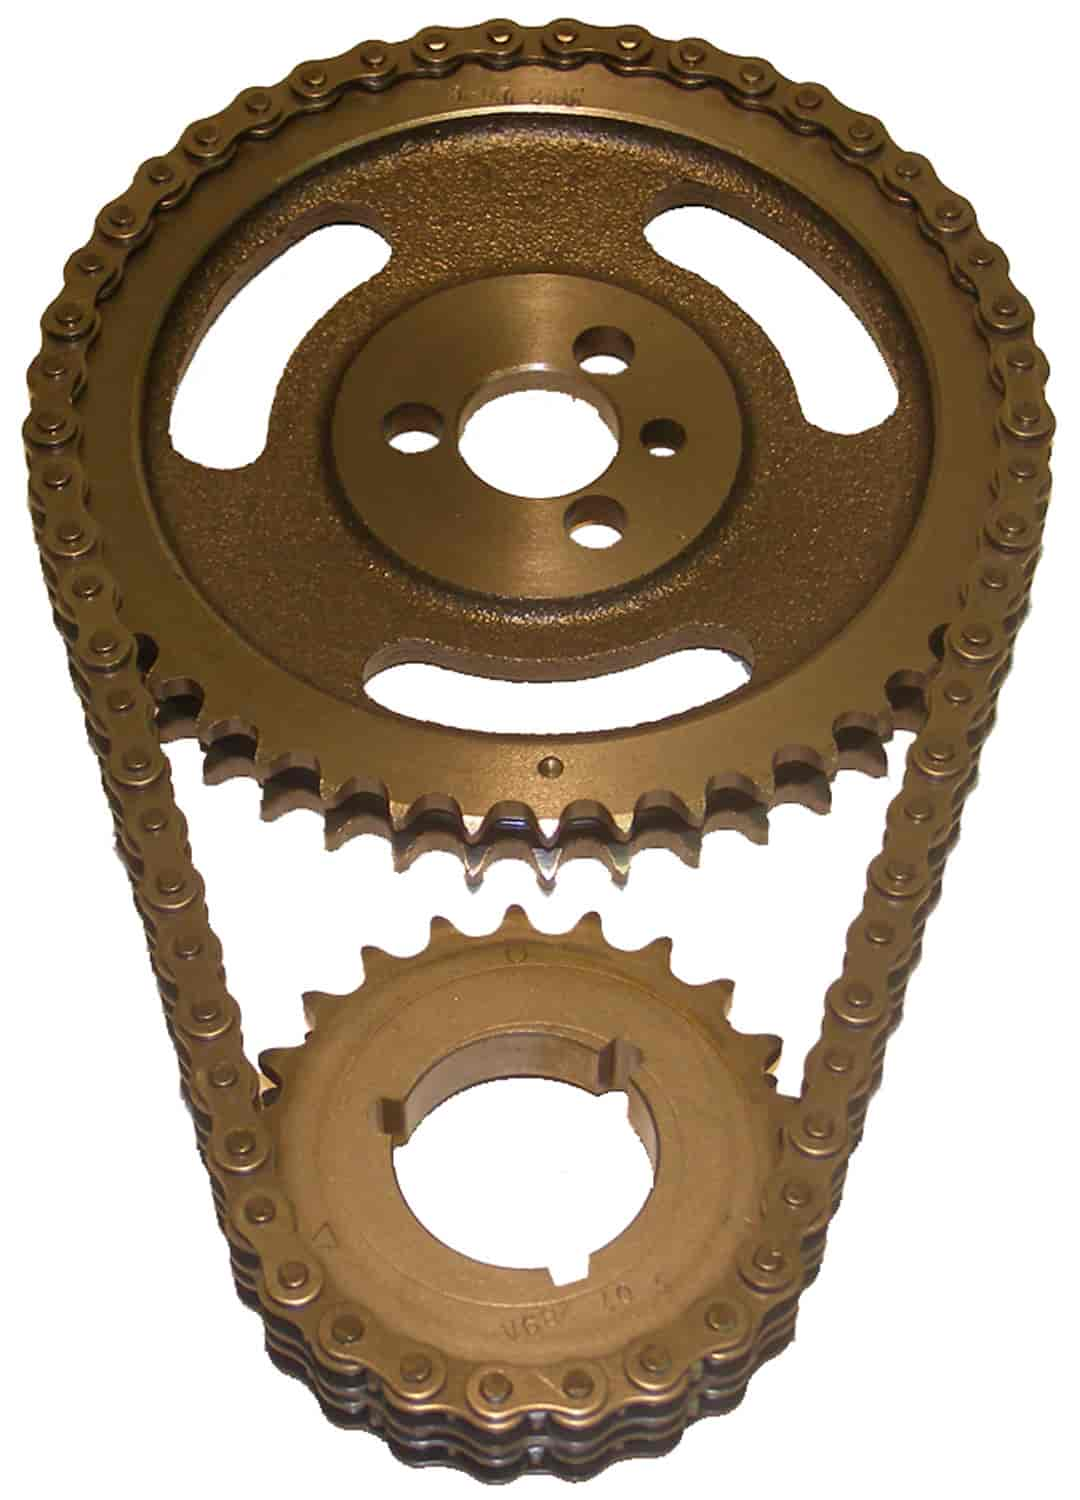 Small Block Chevy Cloyes Double Roller Timing Chain /& Gear Set 3 Keyway C3023XSP